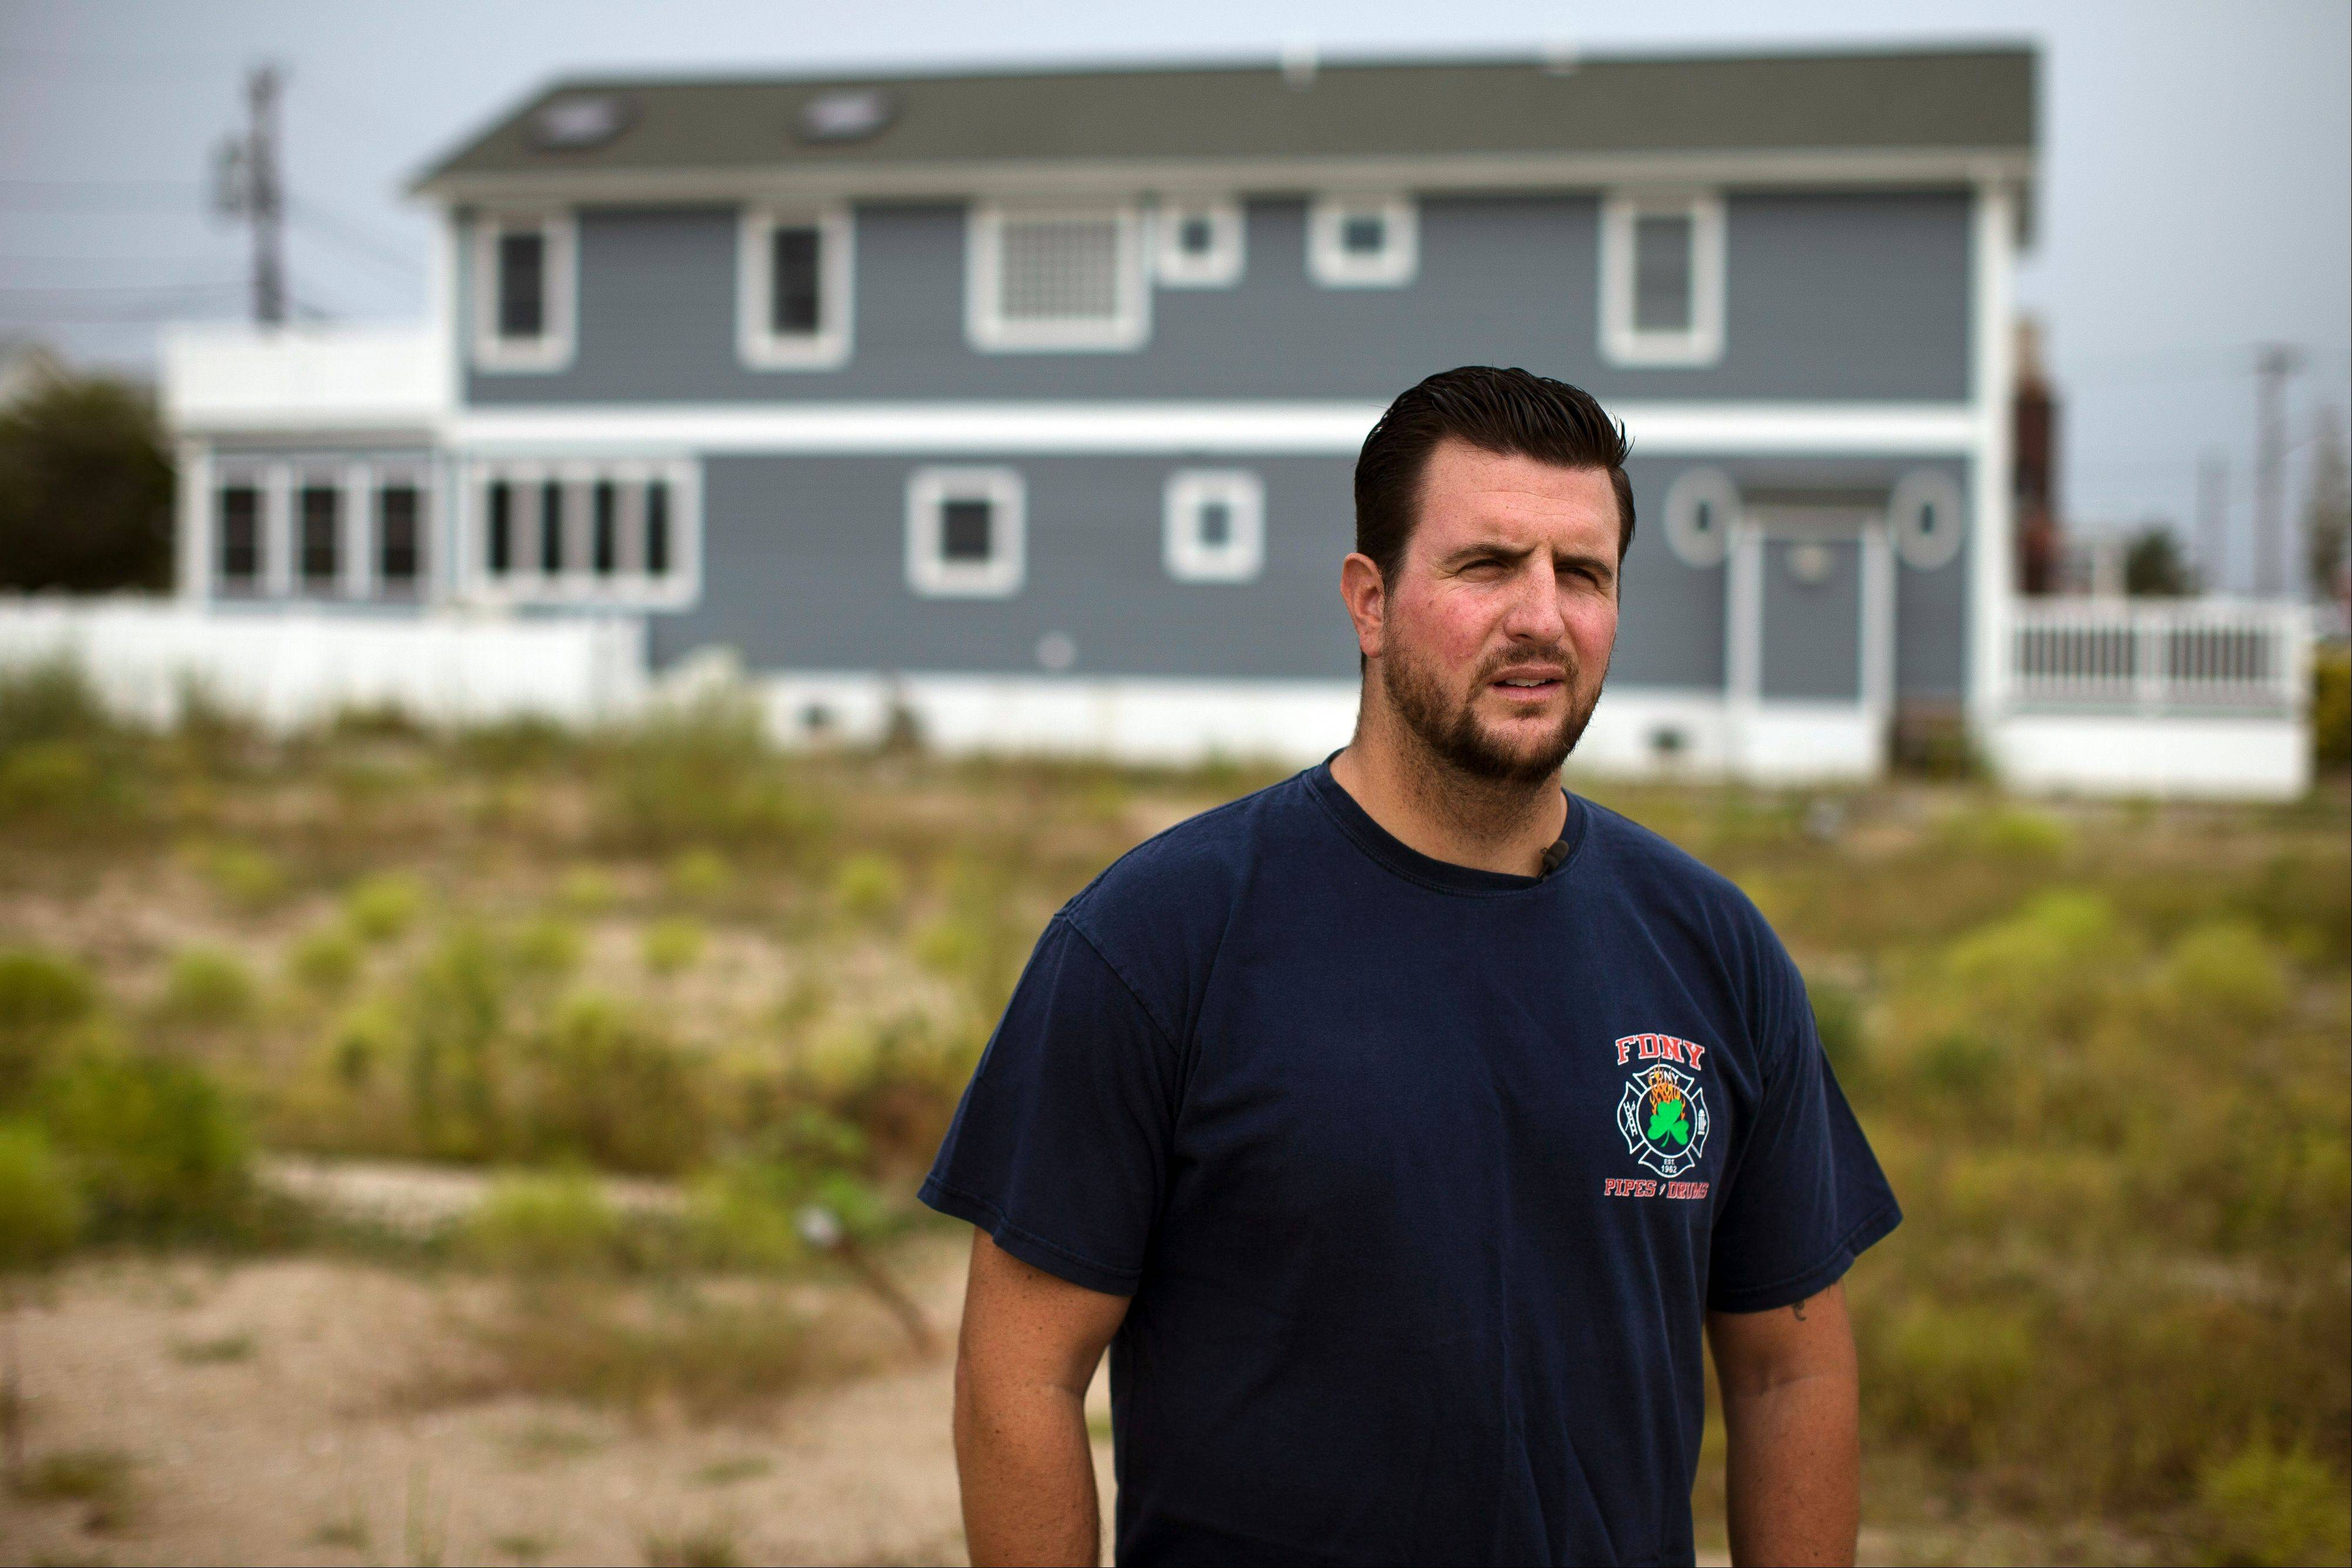 Families lose 9/11 mementos in Superstorm Sandy floods, fire